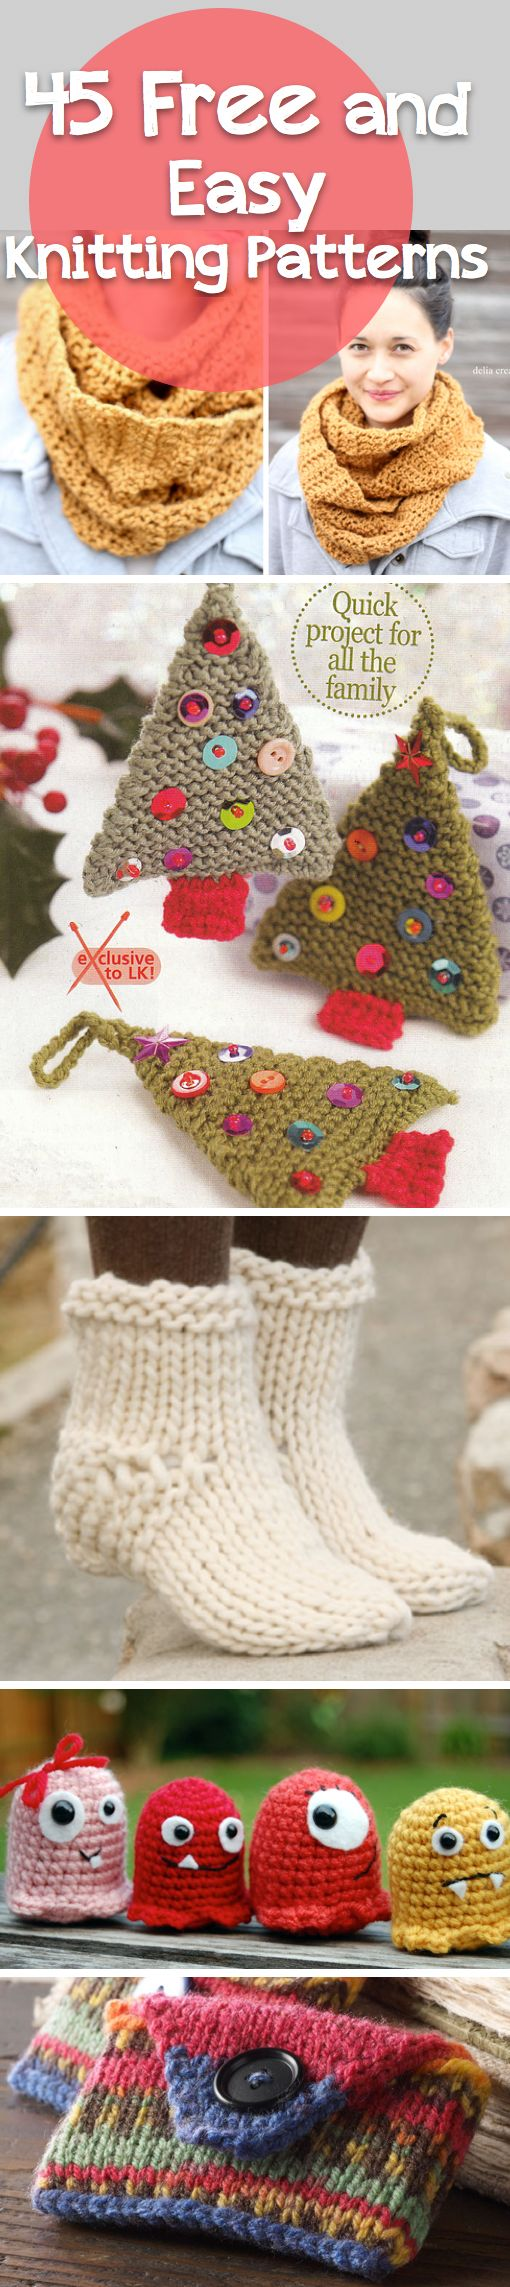 45 Free and Easy Knitting Patterns #OperationChristmasChild